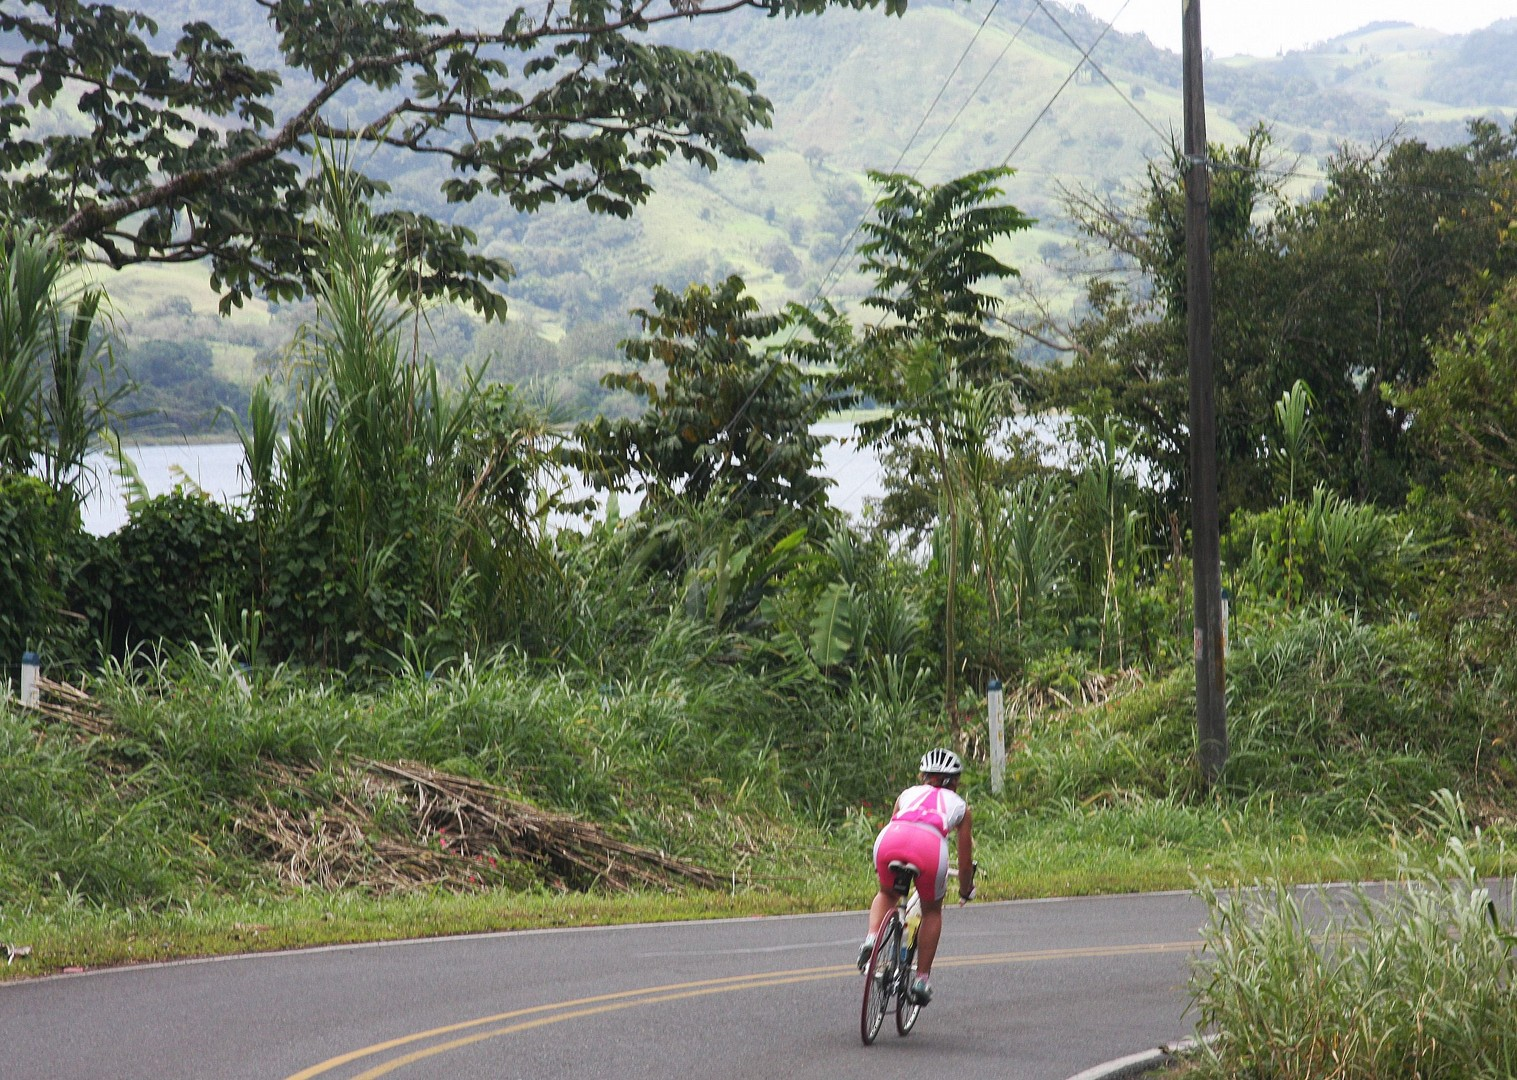 ruta-de-los-volcanes-costa-rica-guided-road-cycling-holiday-san-jose.jpg - Costa Rica - Ruta de los Volcanes - Road Cycling